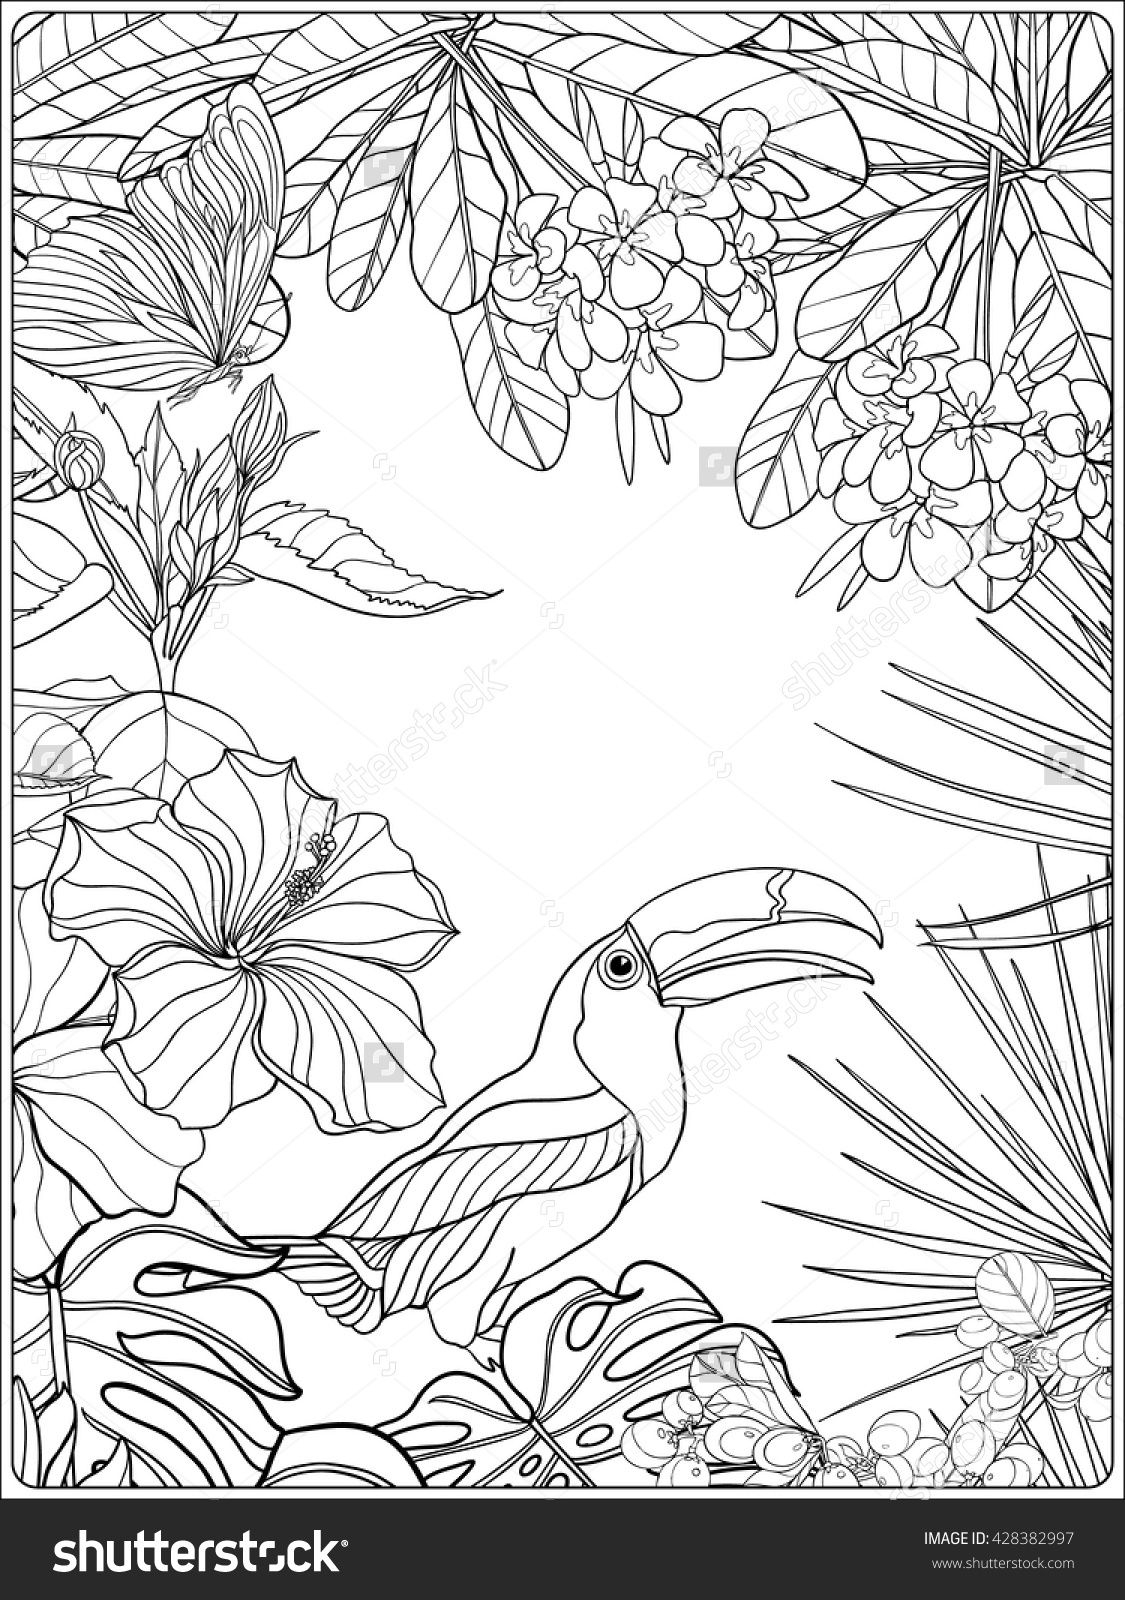 tropical bird coloring pages colorful parrots tropical birds pdf coloring book for pages coloring tropical bird